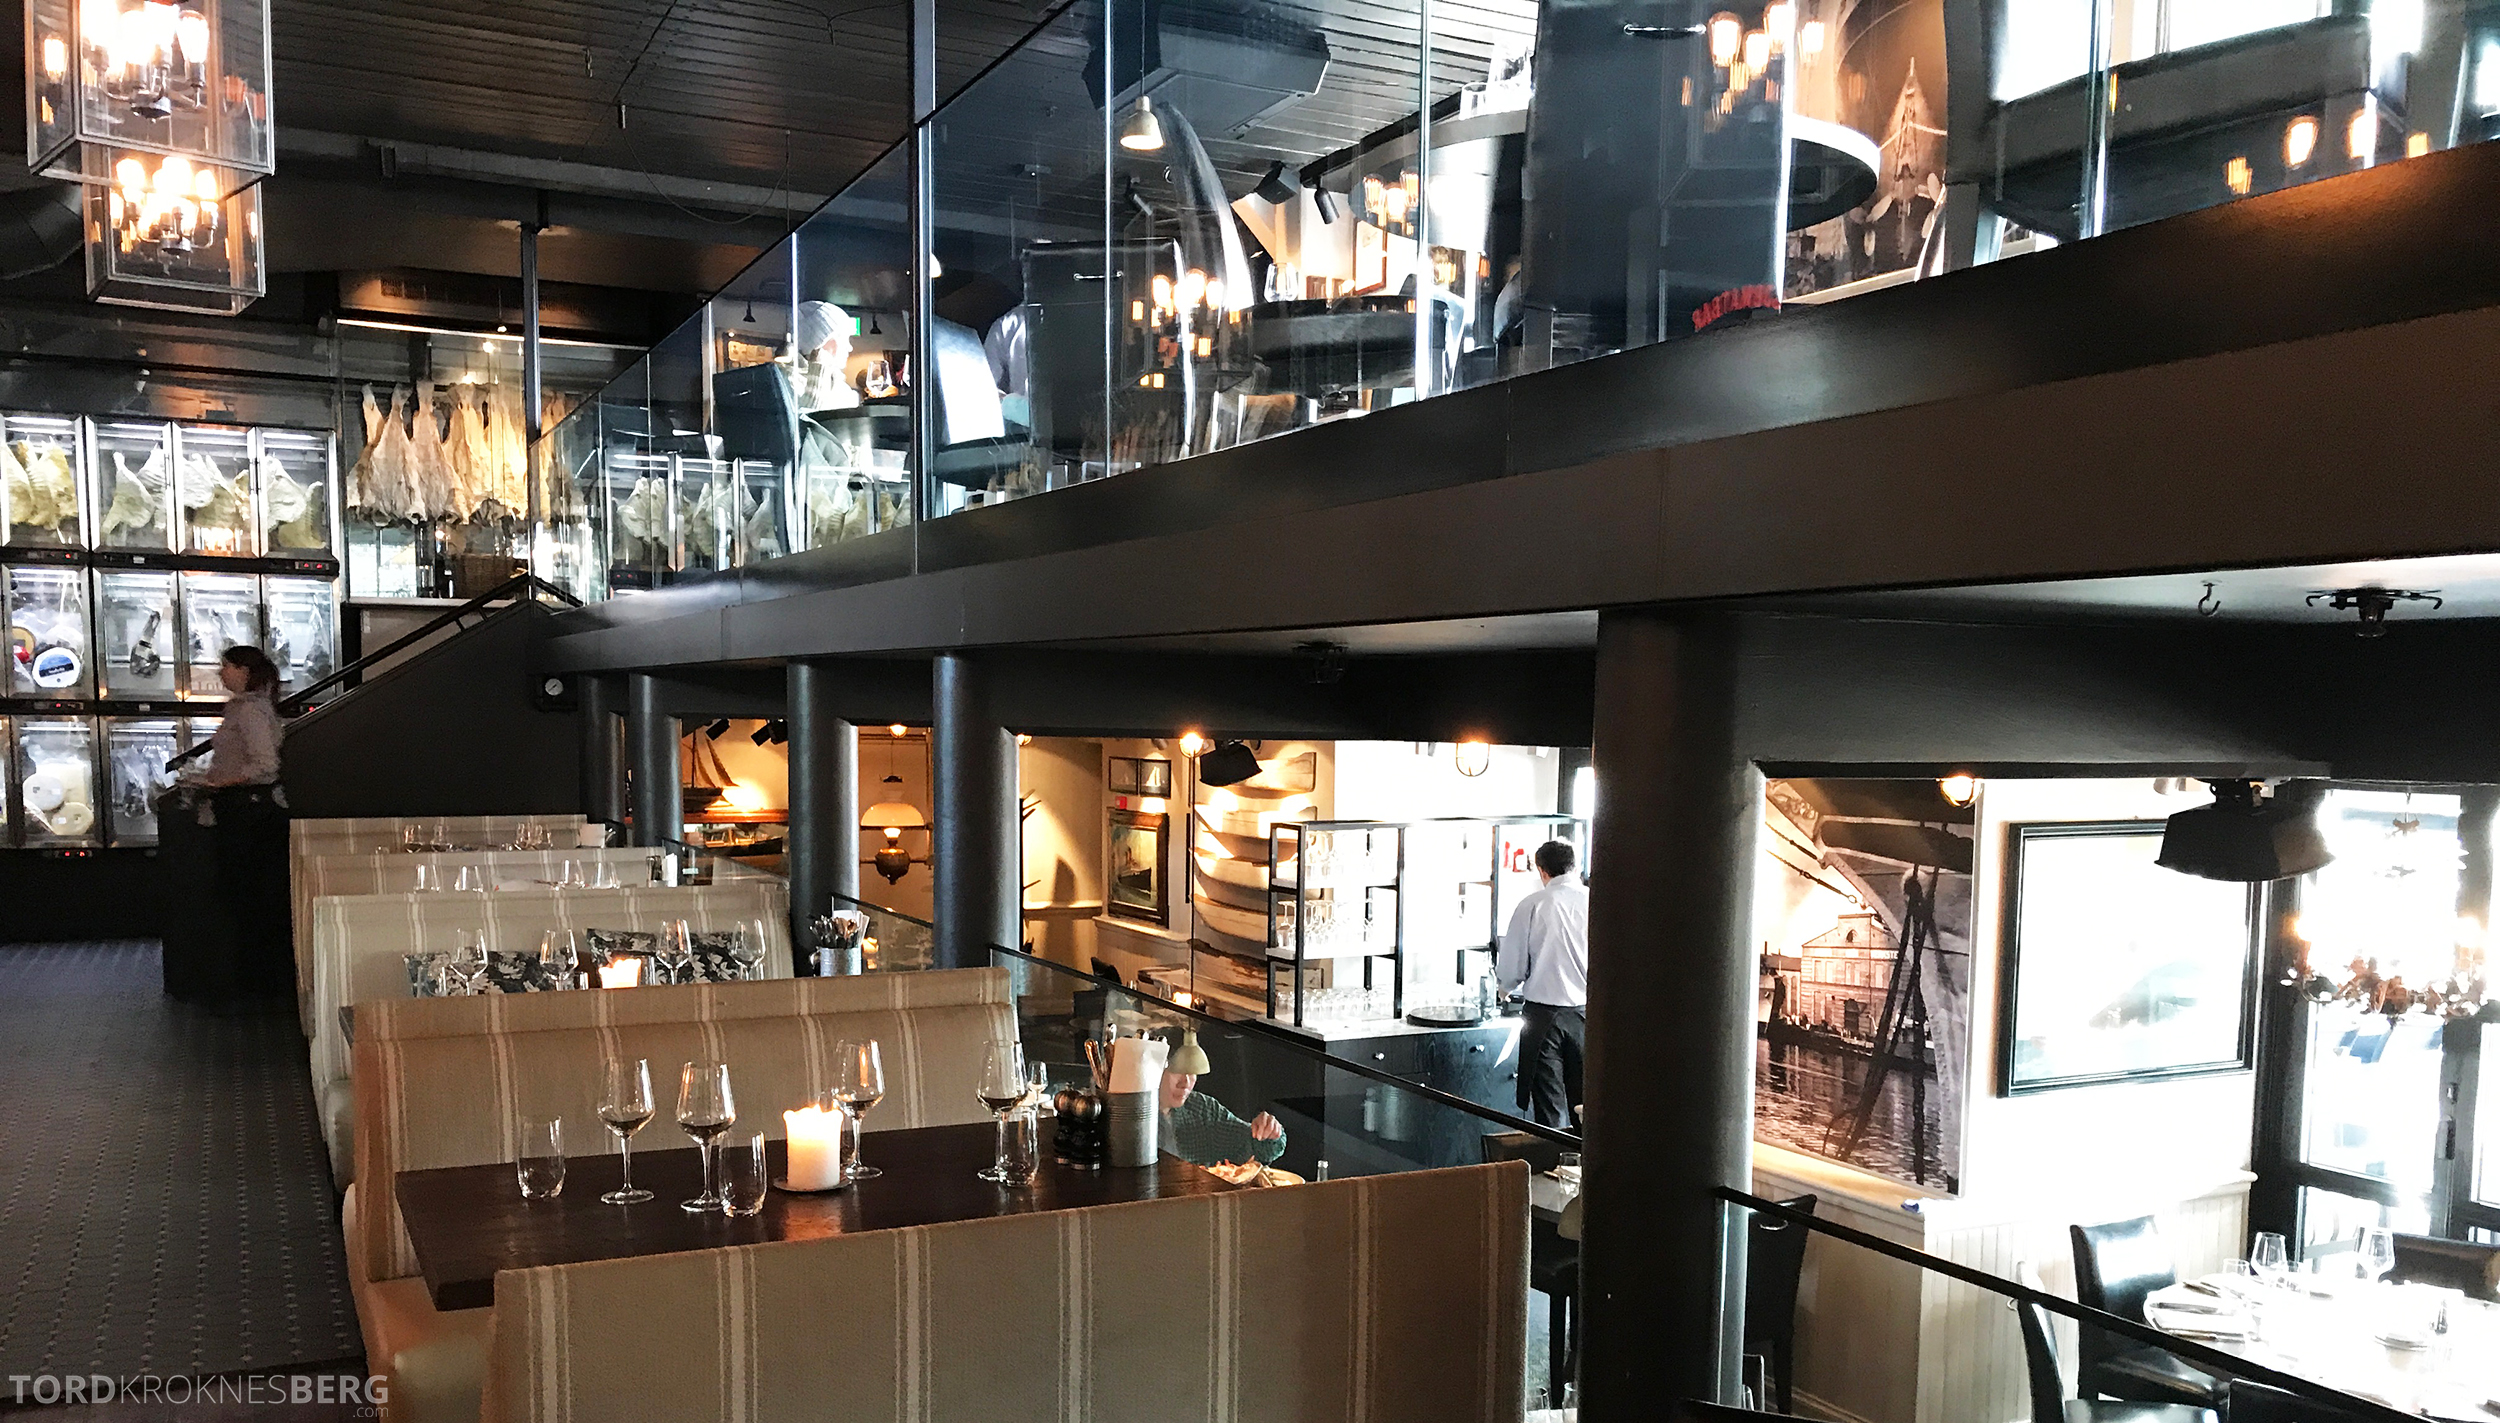 Louise Restaurant Bar Aker Brygge inne